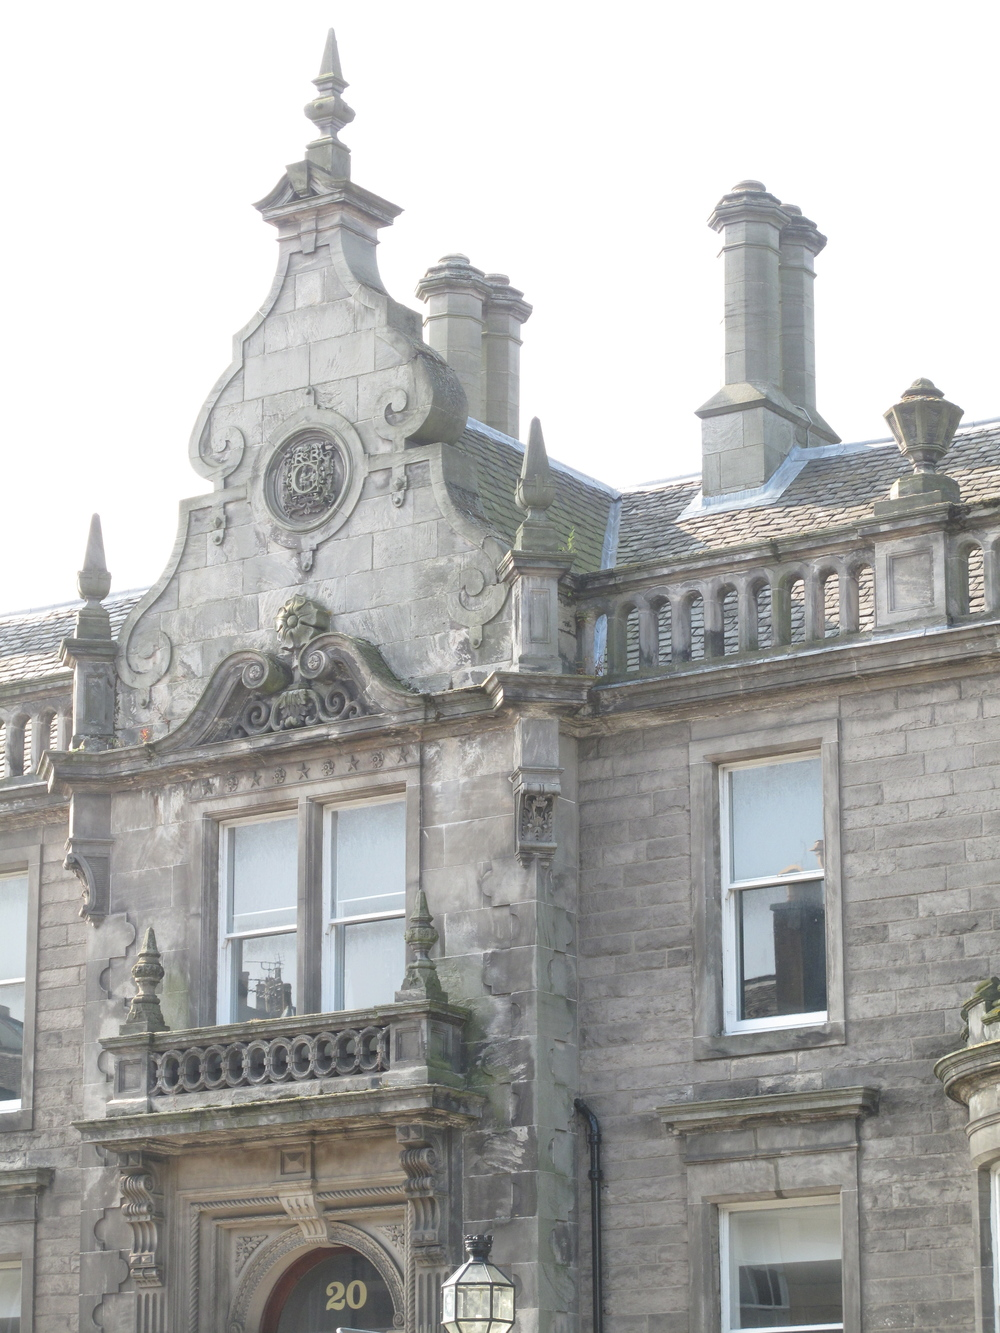 Edinburgh stone architecture.